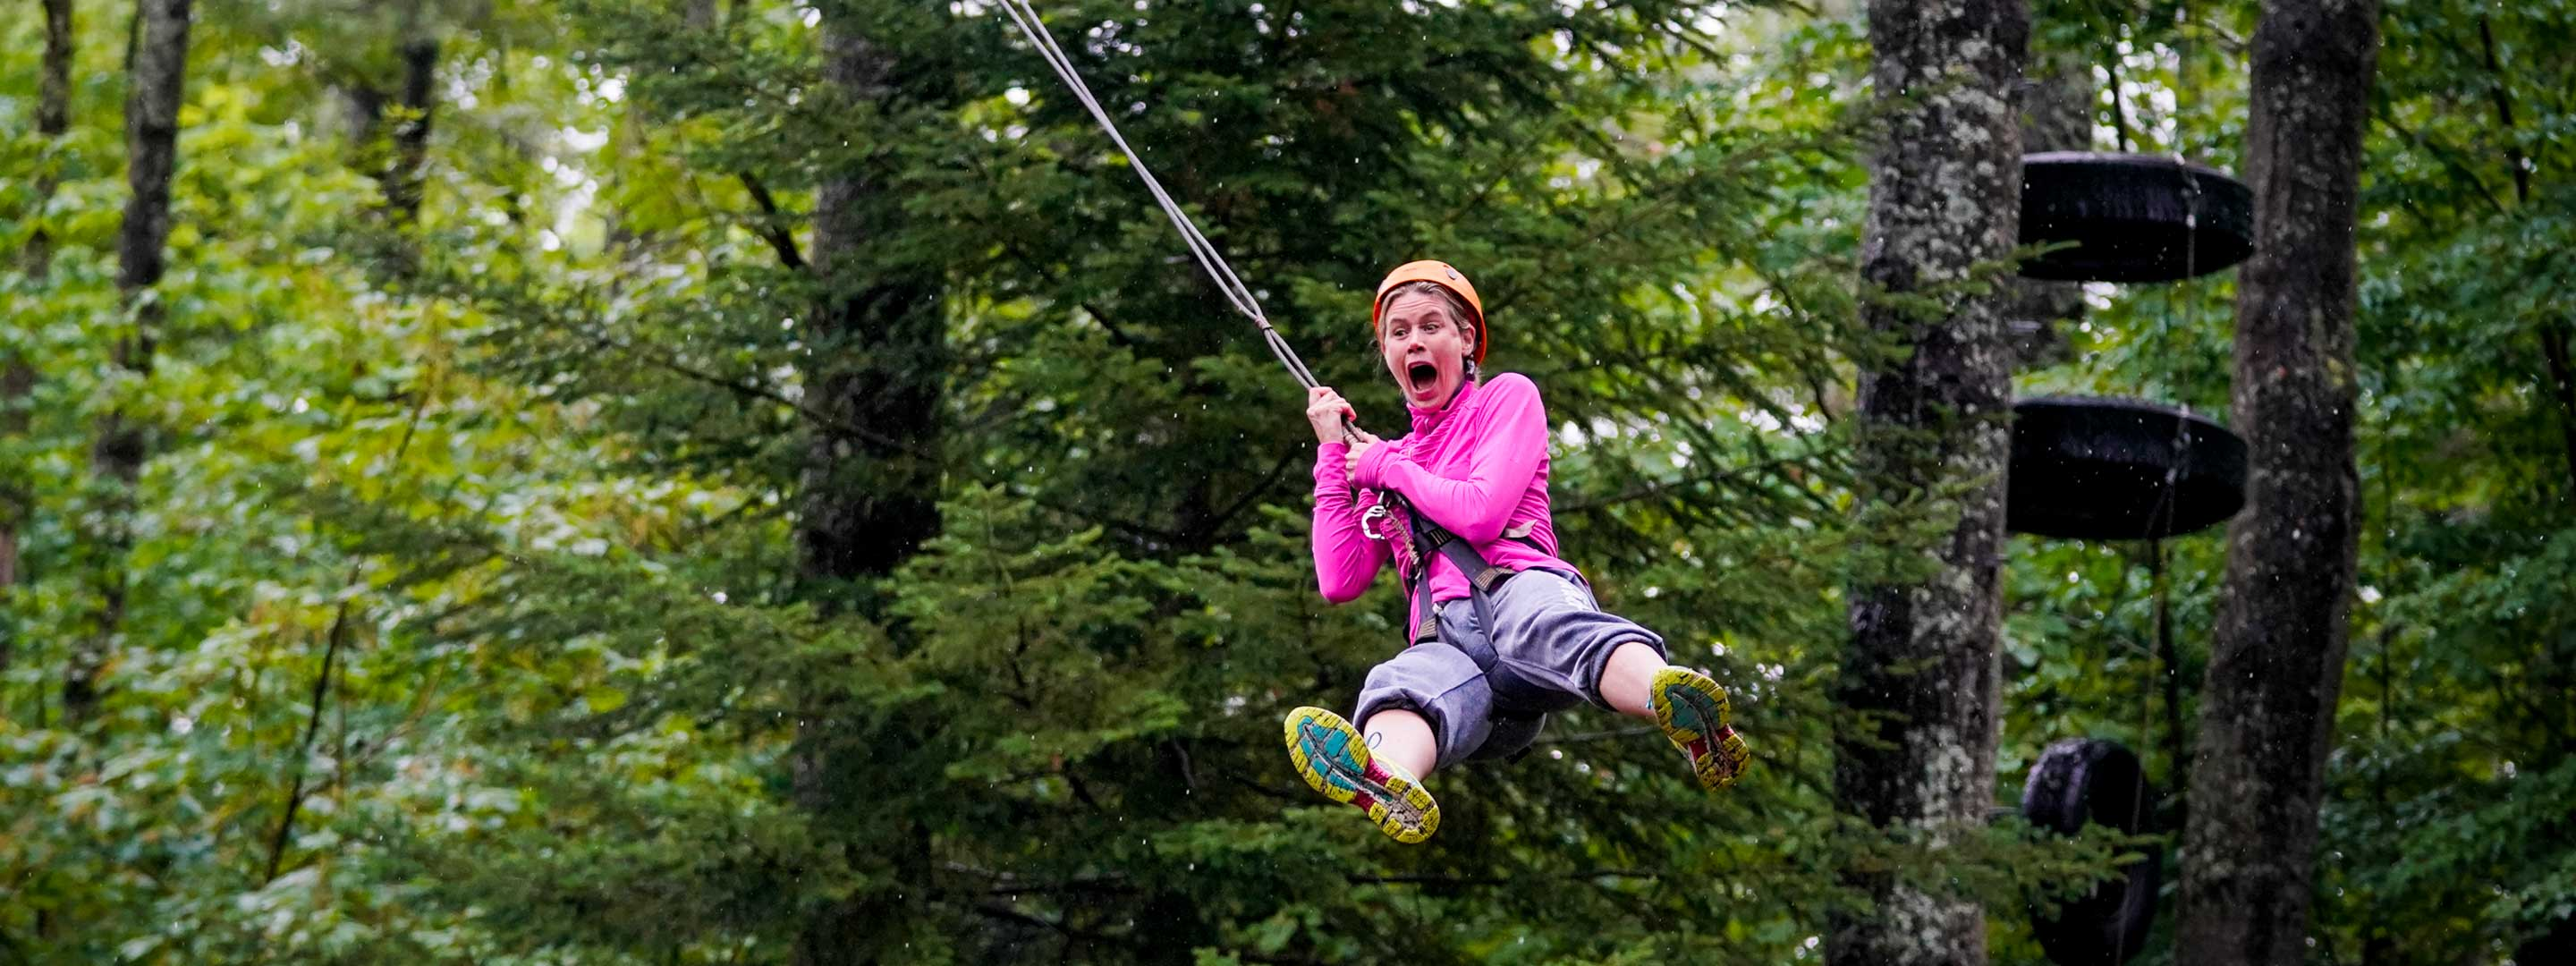 woman with a fearful look on her face on a zipline